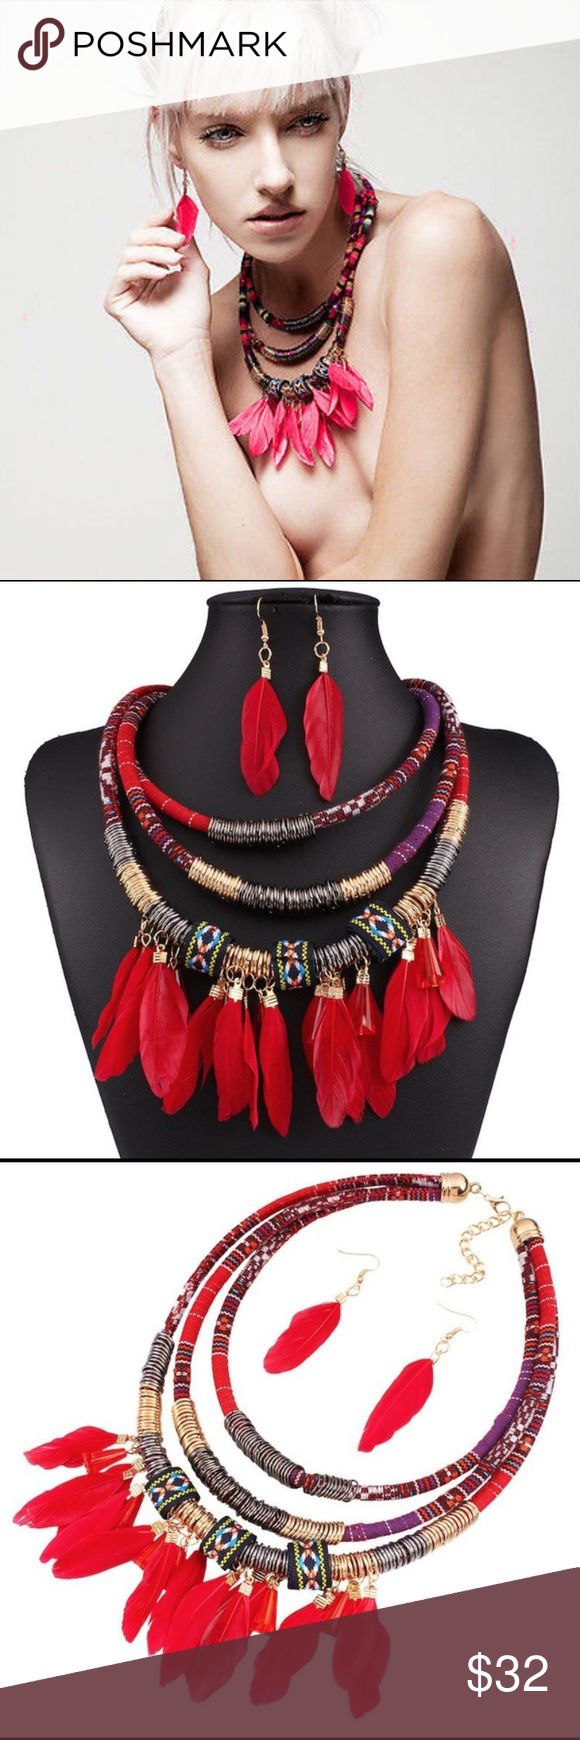 BOHO FEATHER Red Statement Necklace Set Brand New Red Boho Statement Necklace Earrings Set with feathers. Please see last photo for material and measurement. Jewelry Necklaces